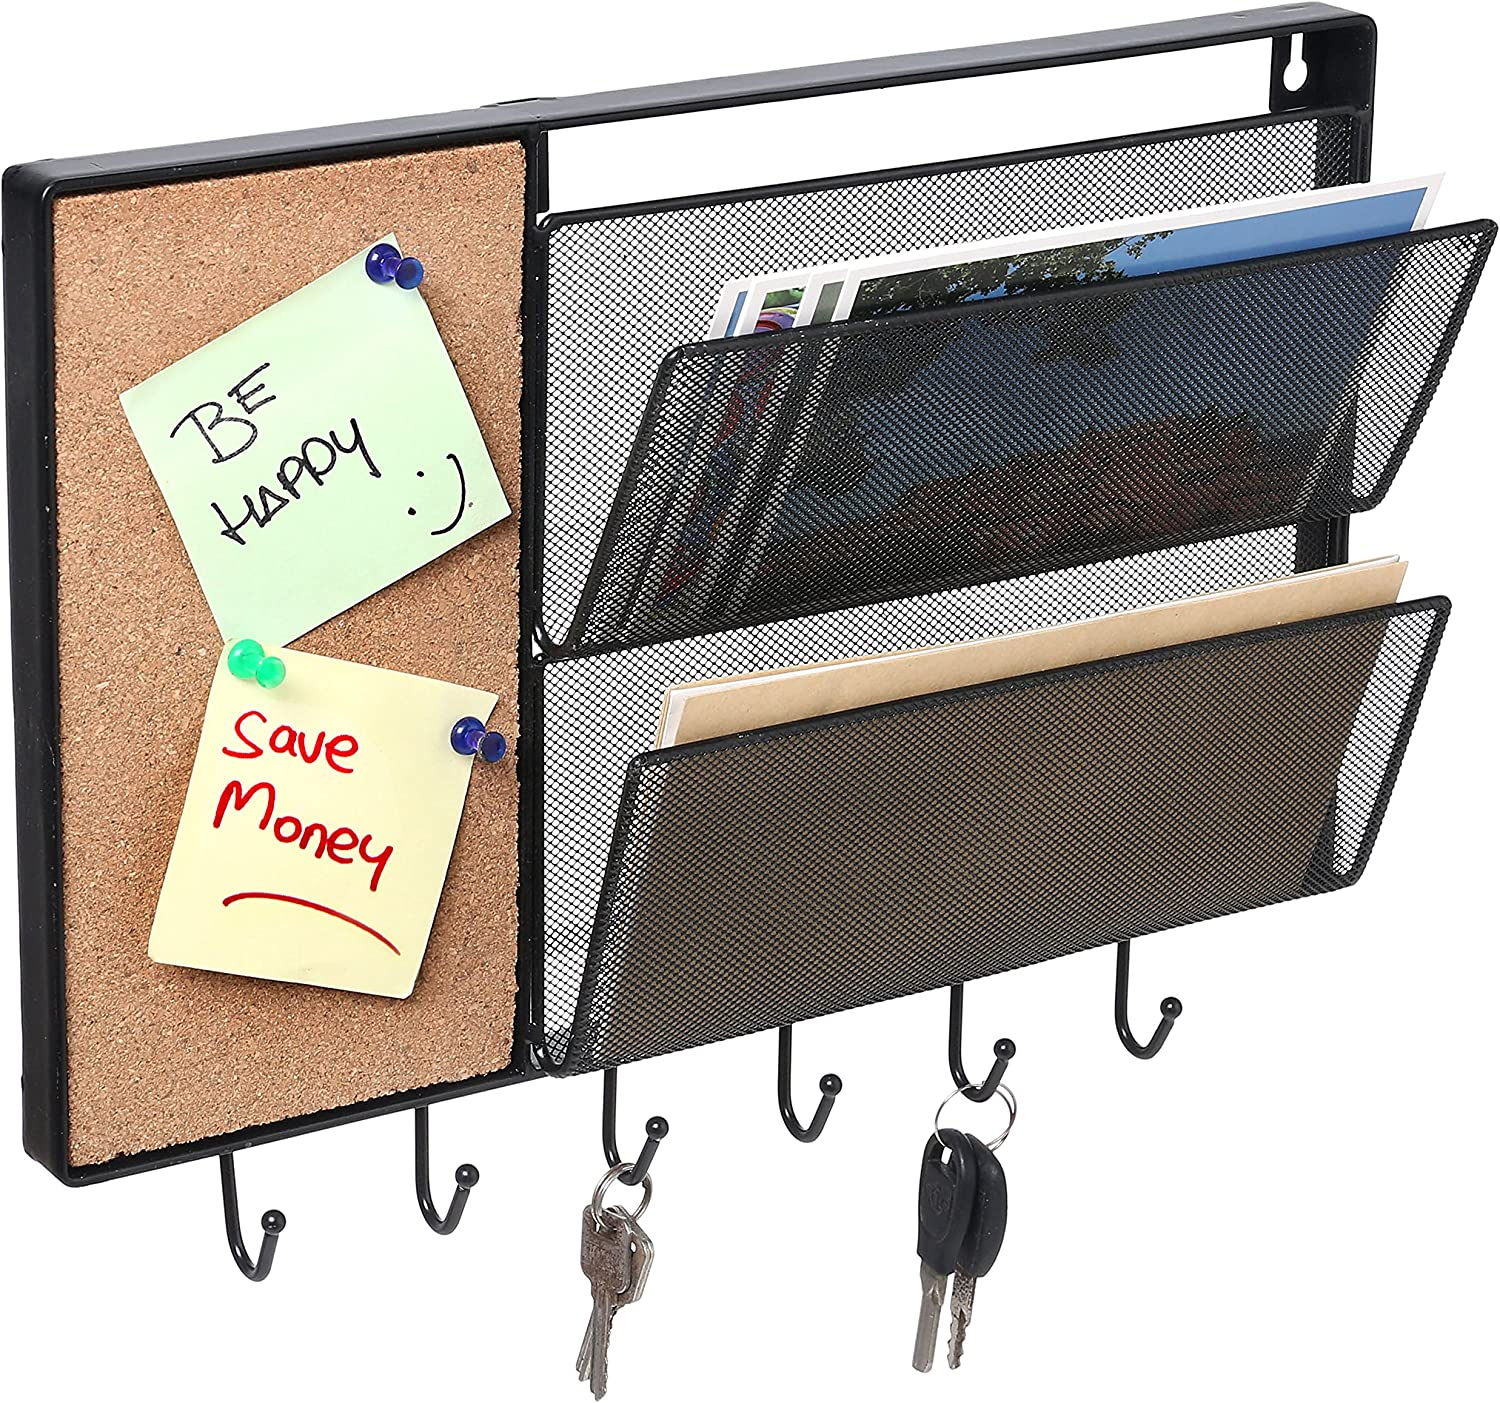 MyGift 15-Inch Wall-Mounted Black Mesh Metal Storage Rack, Hanging Mail Sorter with Cork Memo Board & 6 Key Hooks